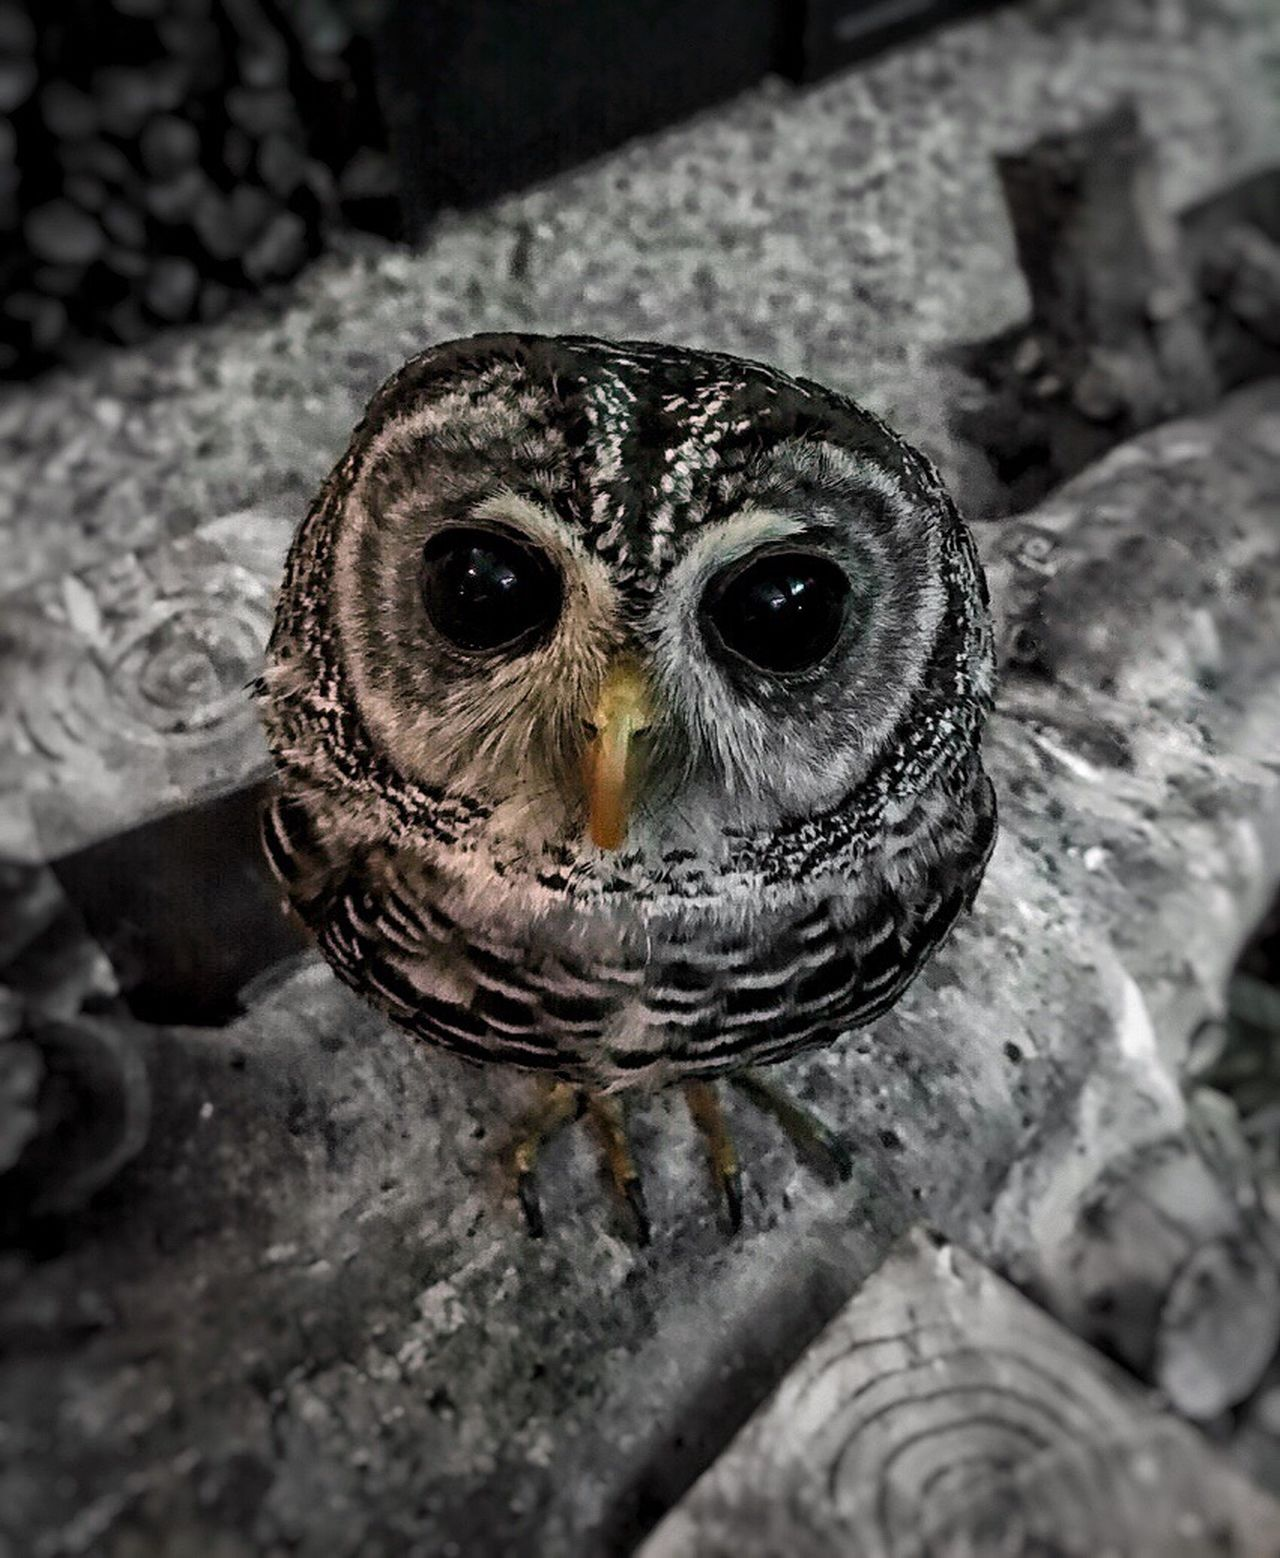 Owl Owl Eyes One Animal Animal Themes Looking At Camera Bird Close-up No People Nature